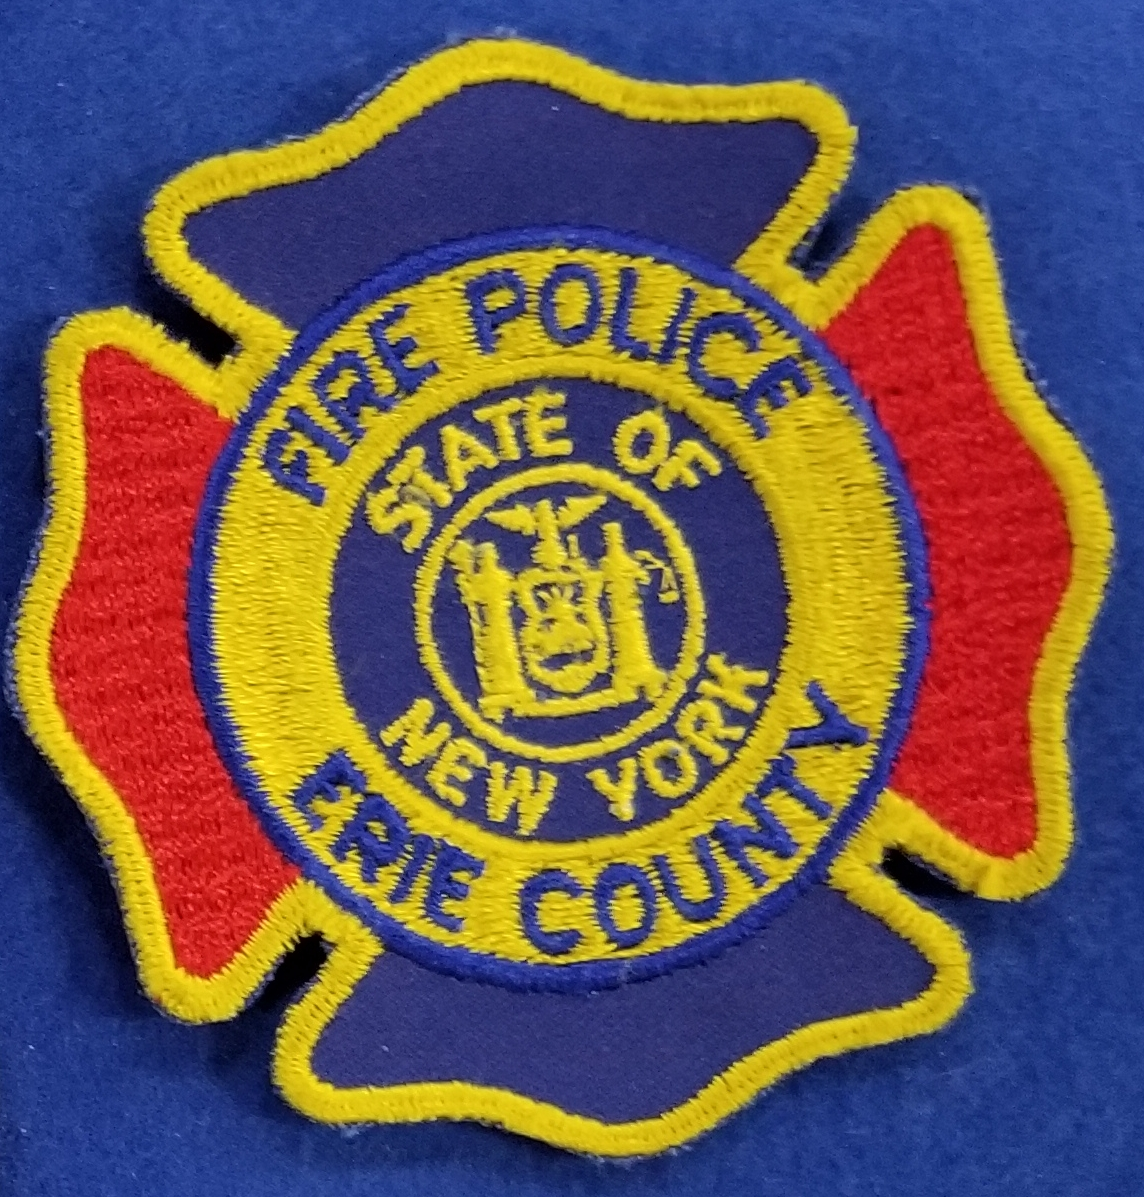 Erie County Fire Police NY